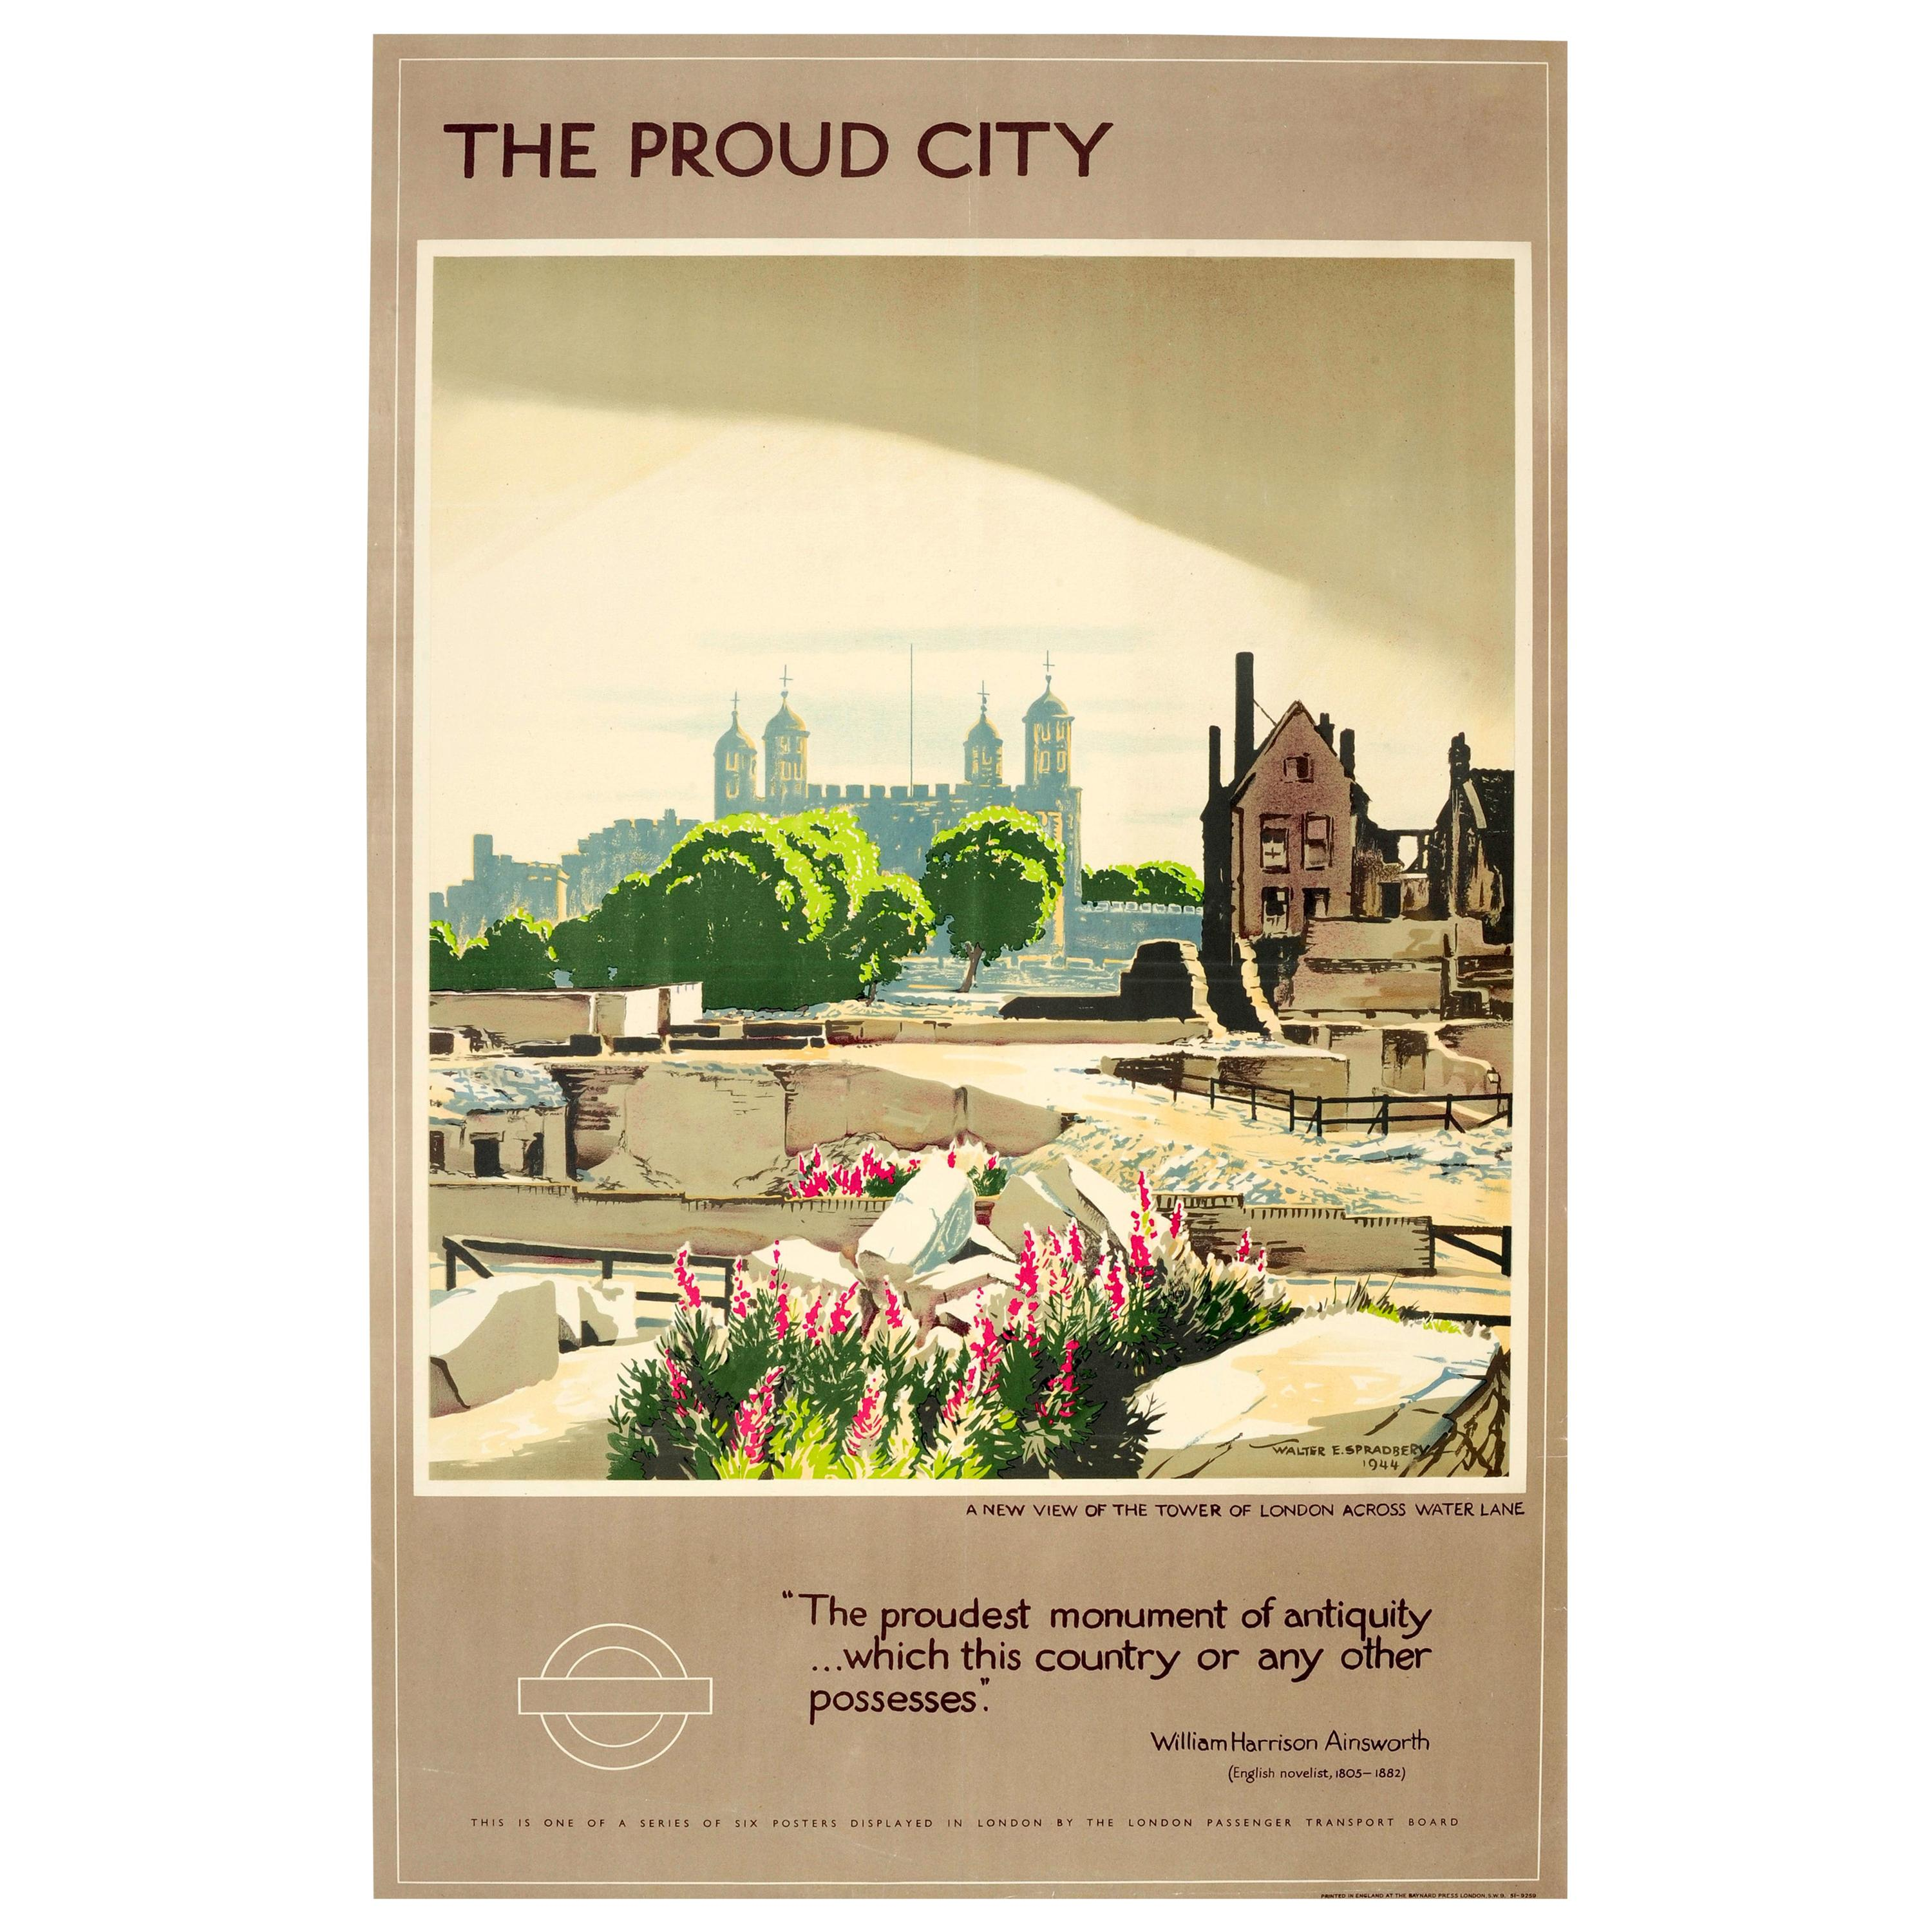 Original Vintage WWII London Transport Poster The Proud City Tower of London